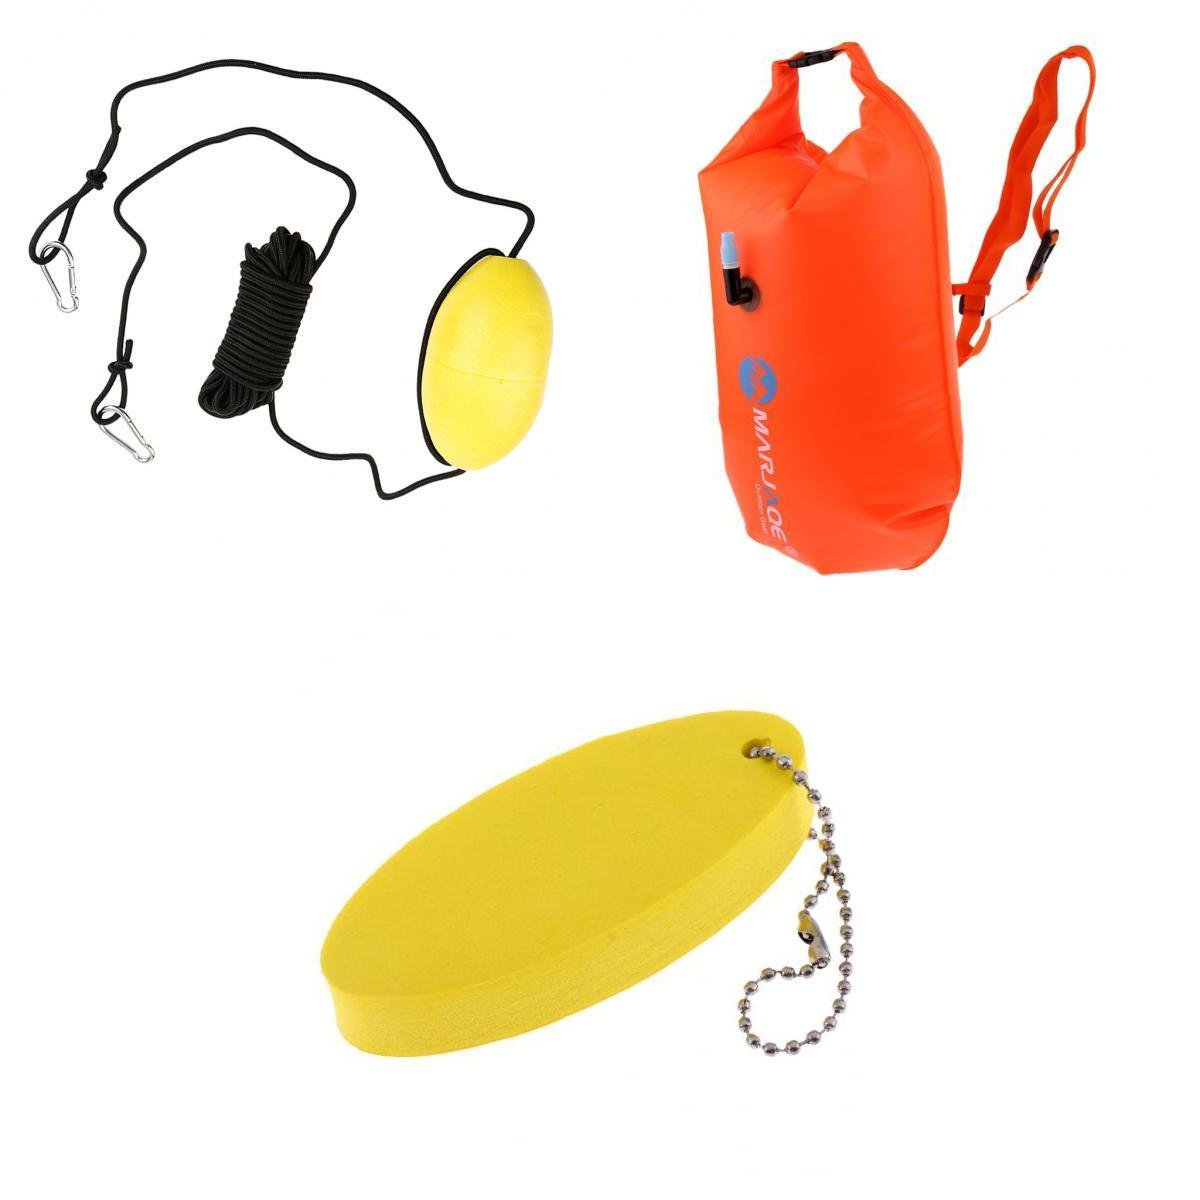 MagiDeal High Visibility Waterproof Floating Dry Bag Pouch Kayak Tow Throw Rope Line Orange Yellow